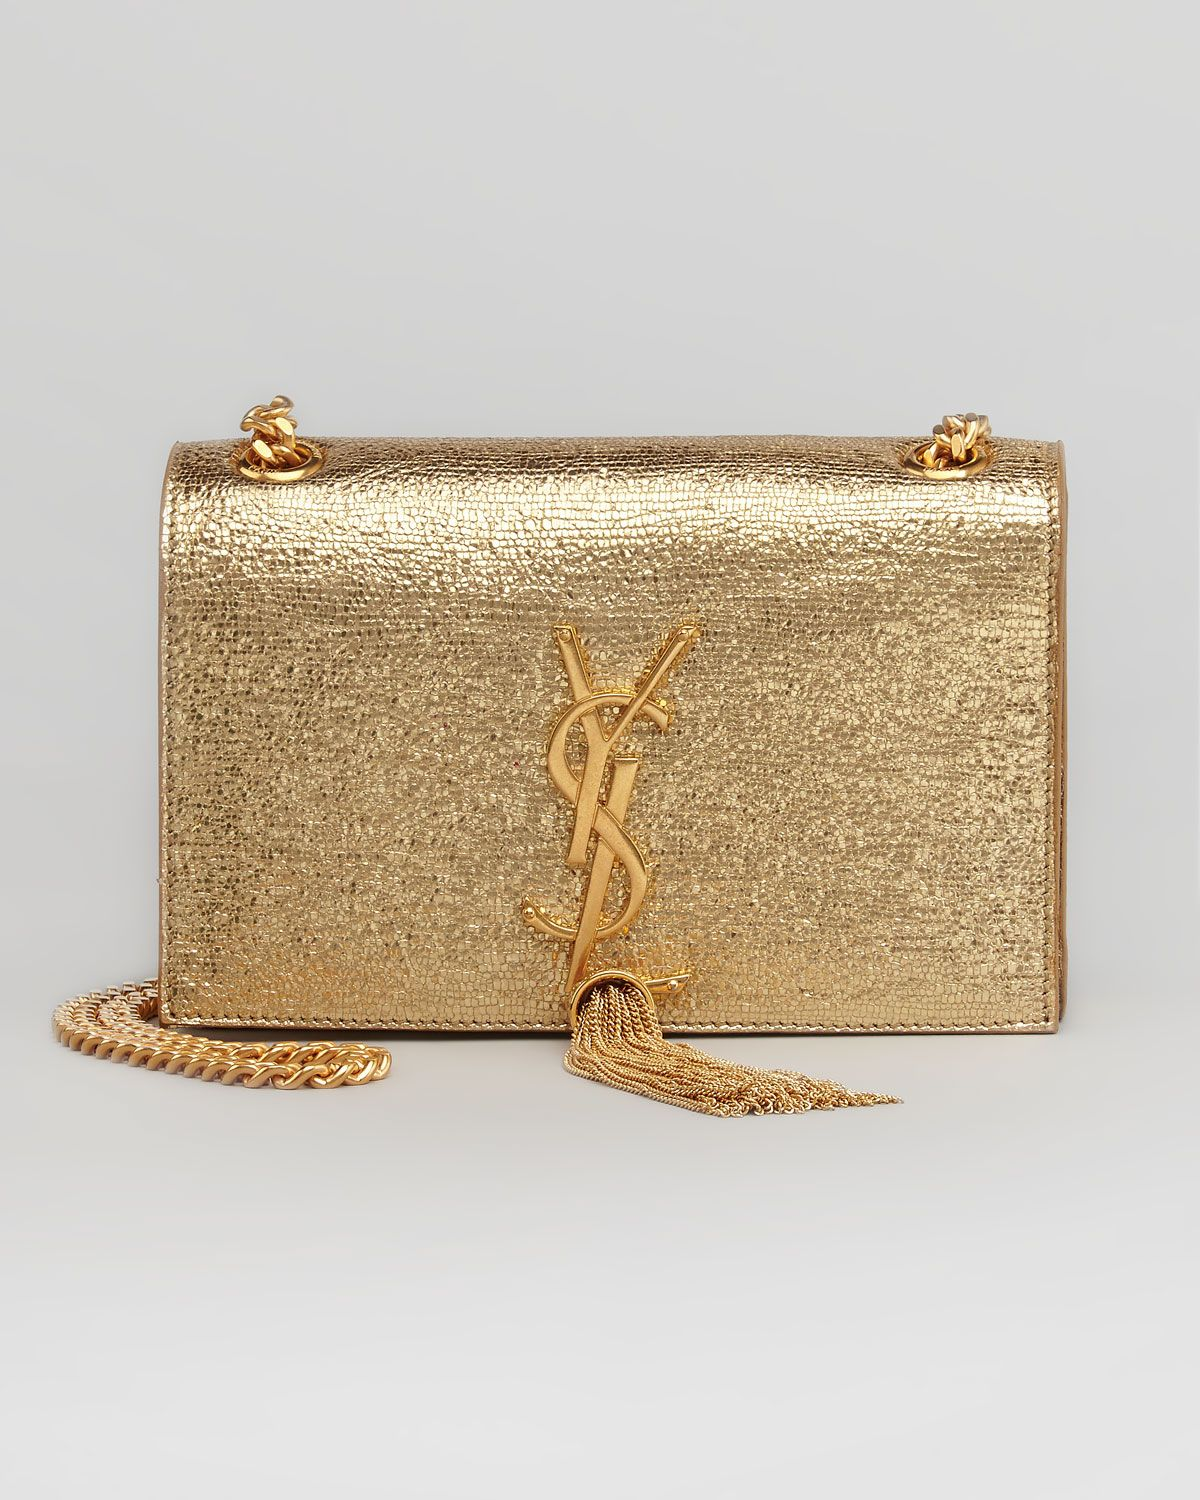 Saint Laurent YSL Gold Tassel clutch #YSL | Bag Lady | Pinterest ...